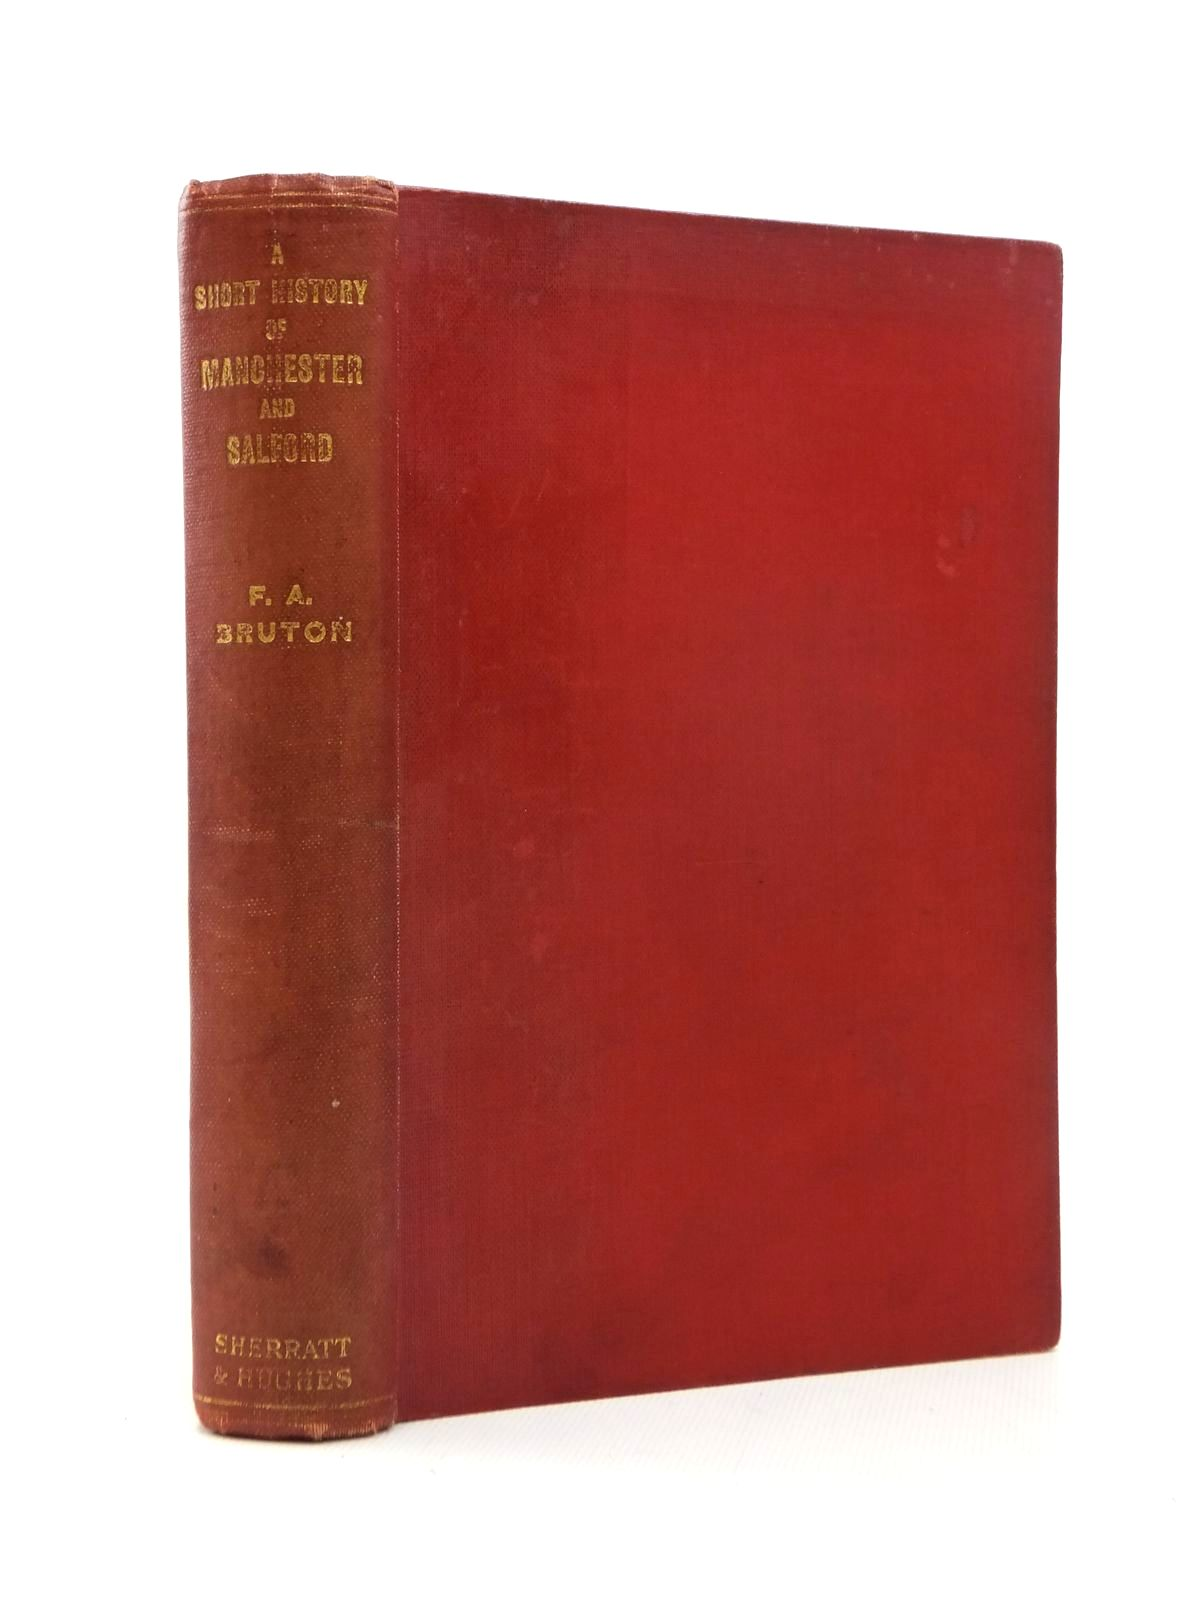 Photo of A SHORT HISTORY OF MANCHESTER AND SALFORD written by Bruton, F.A. published by Sherratt & Hughes (STOCK CODE: 1208758)  for sale by Stella & Rose's Books